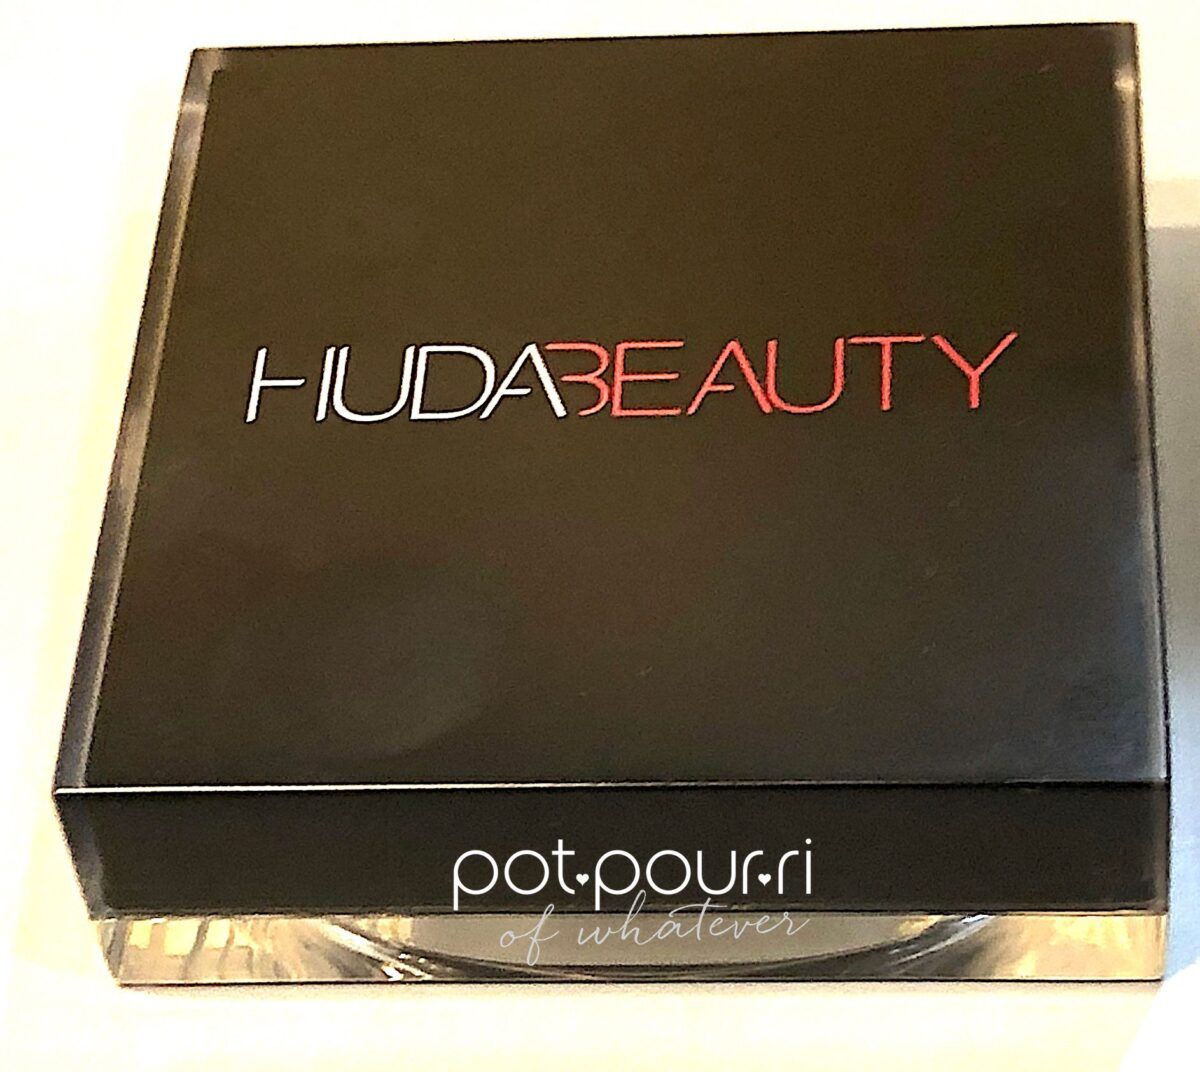 JUDA BEAUTY TANTOUR PACKAGING SLEEK EASY TO OPEN HAR